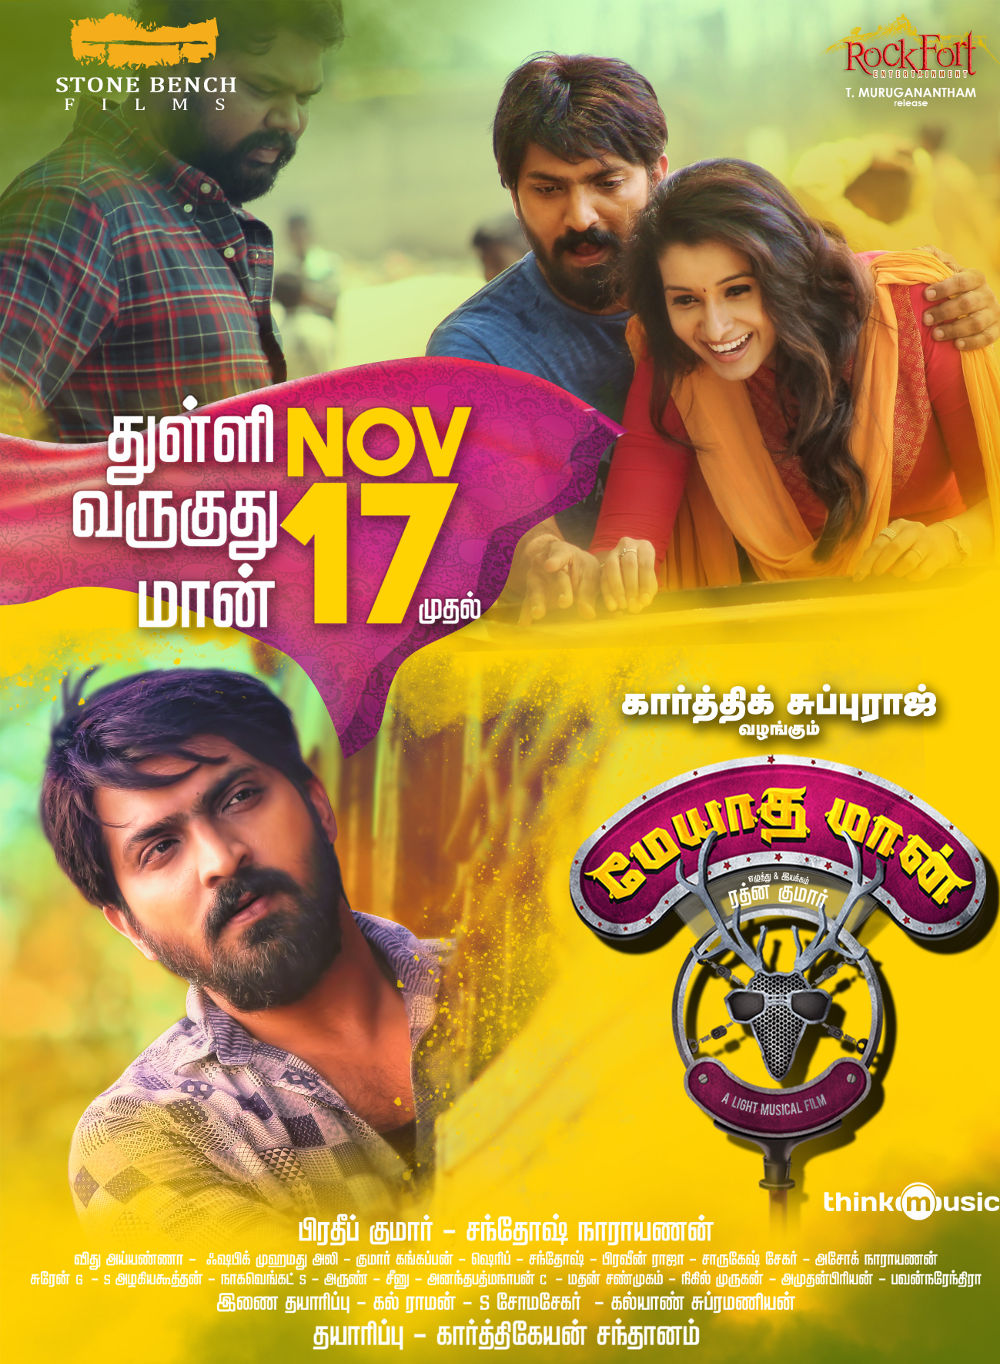 Meyaadha Maan Release On November 17th Poster